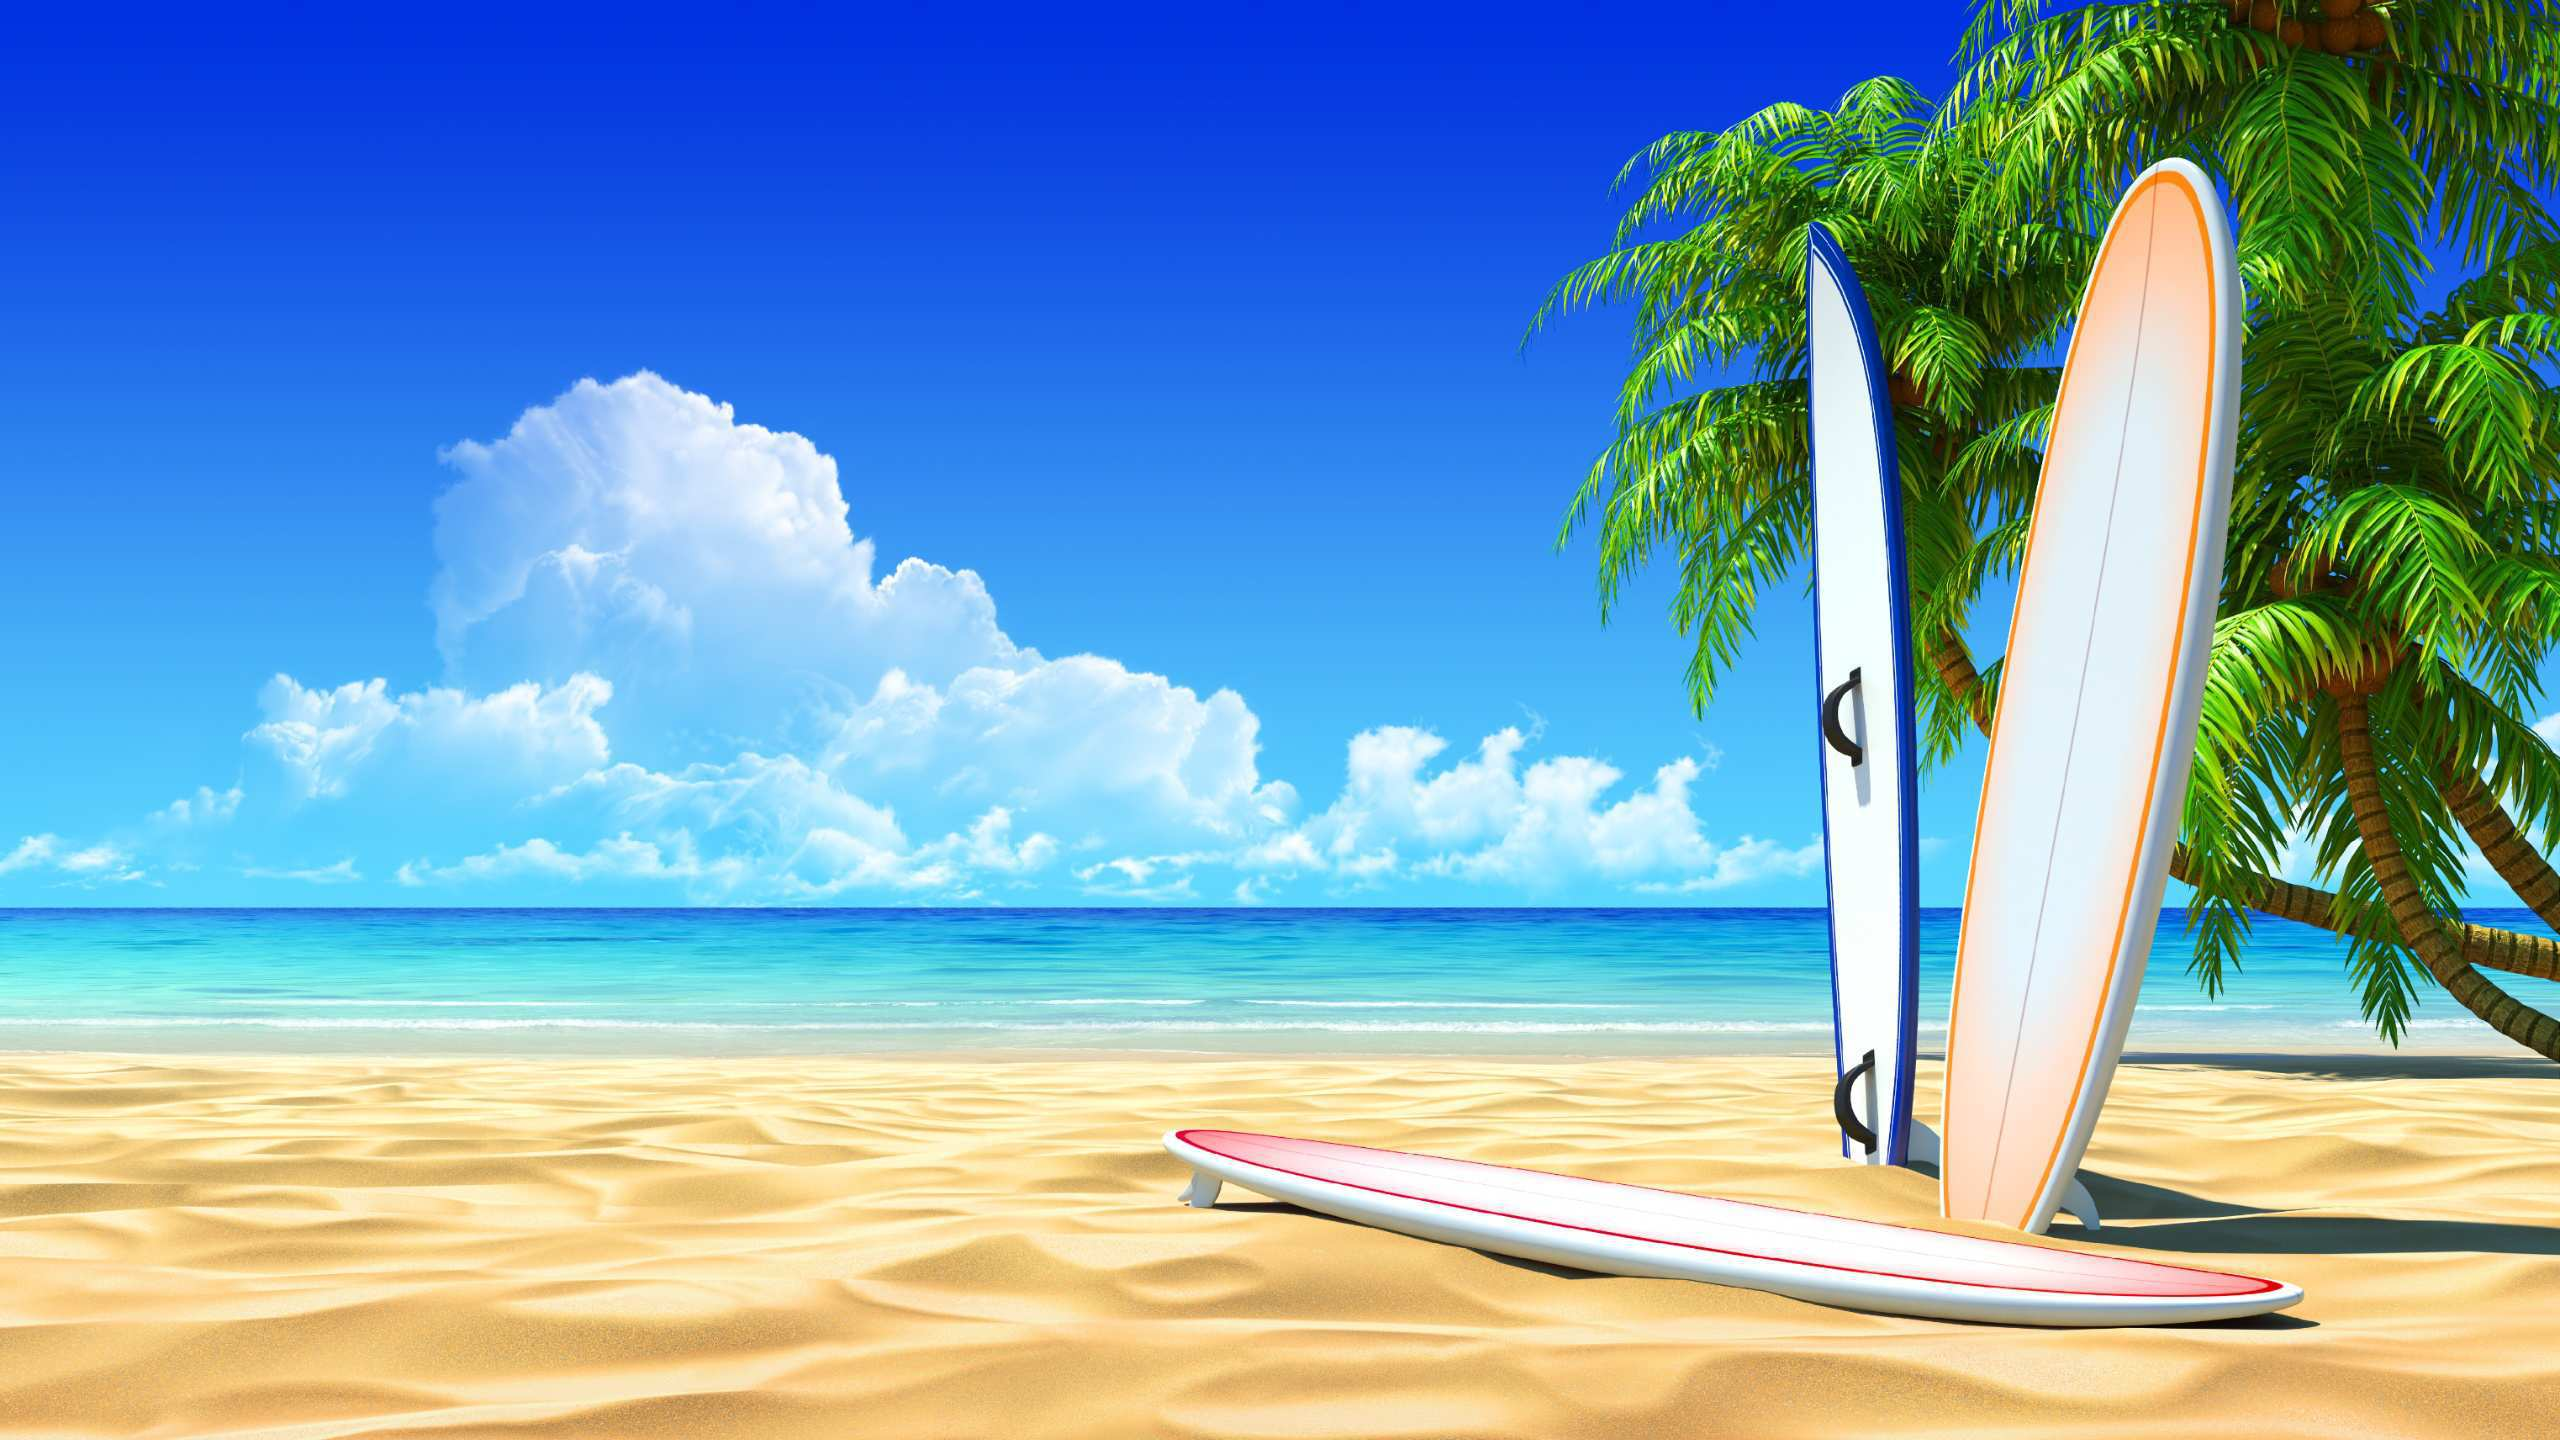 Surf board on the beach Wallpaper Wide Wallpaper Collections 2560x1440